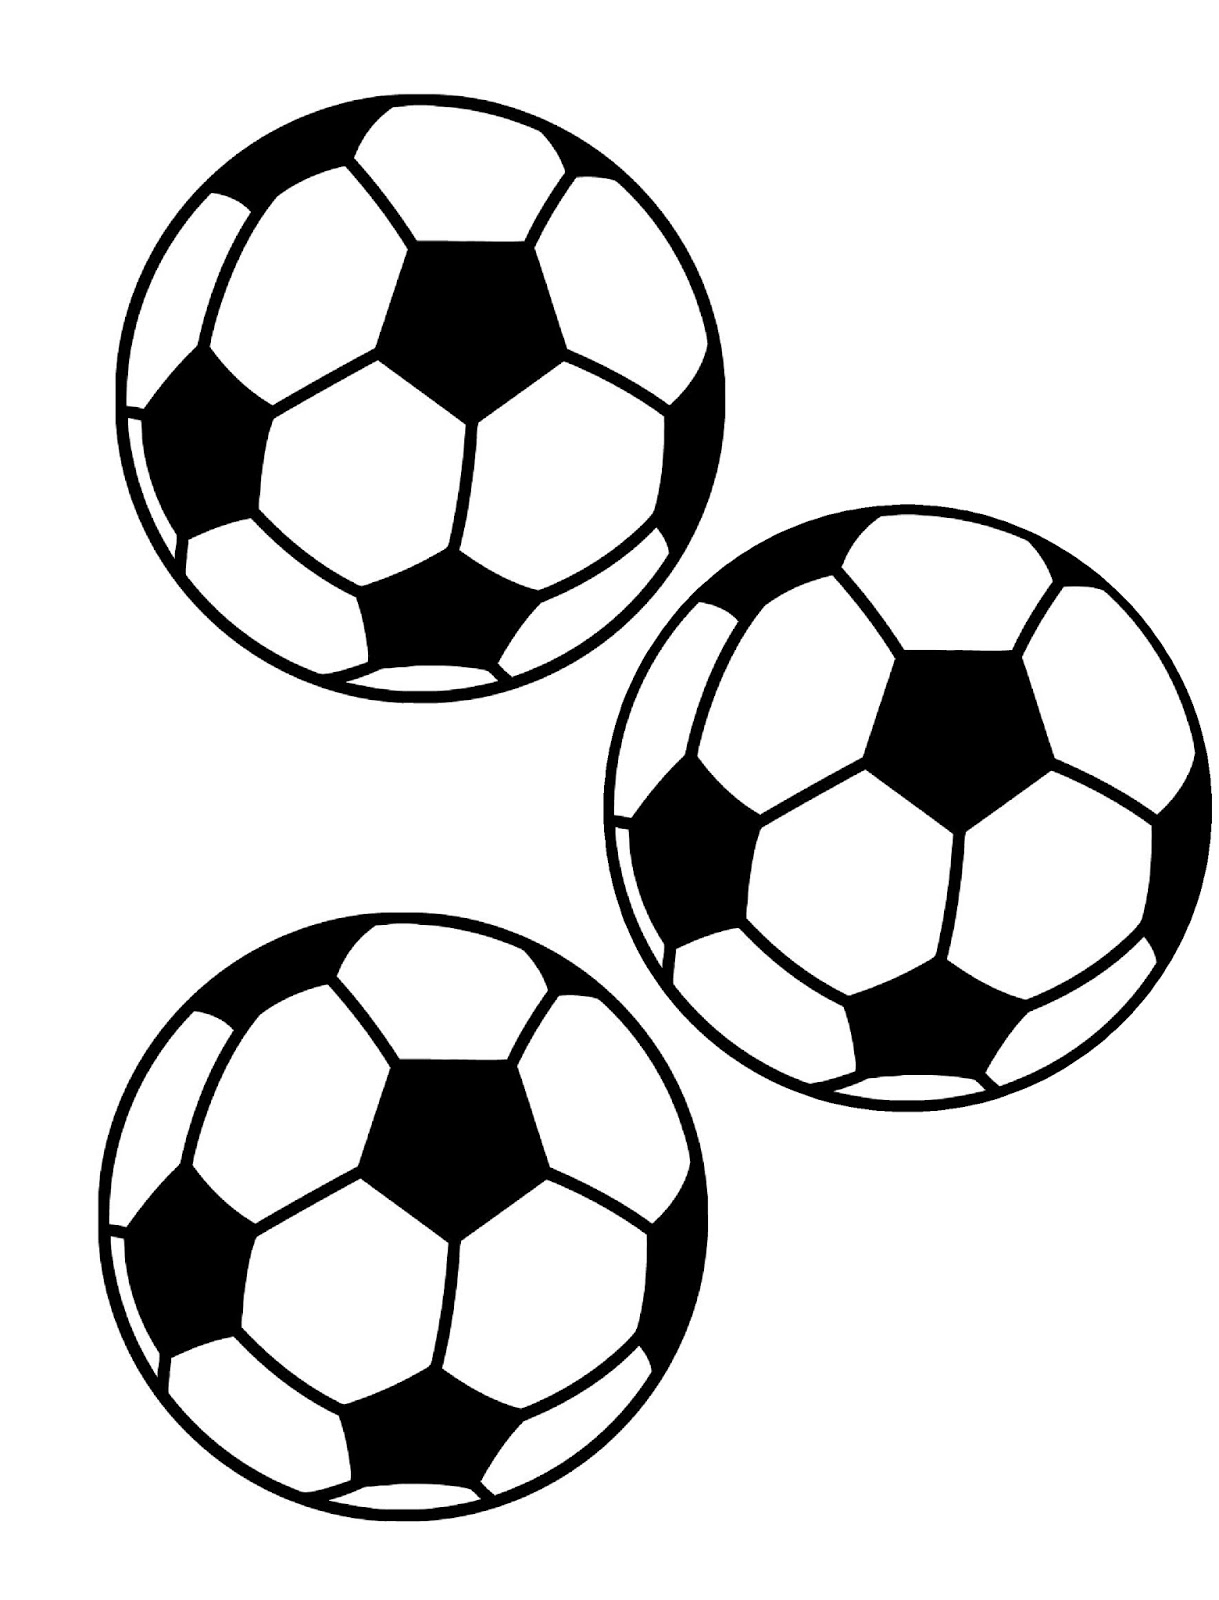 Soccer Balls Images | Free download on ClipArtMag